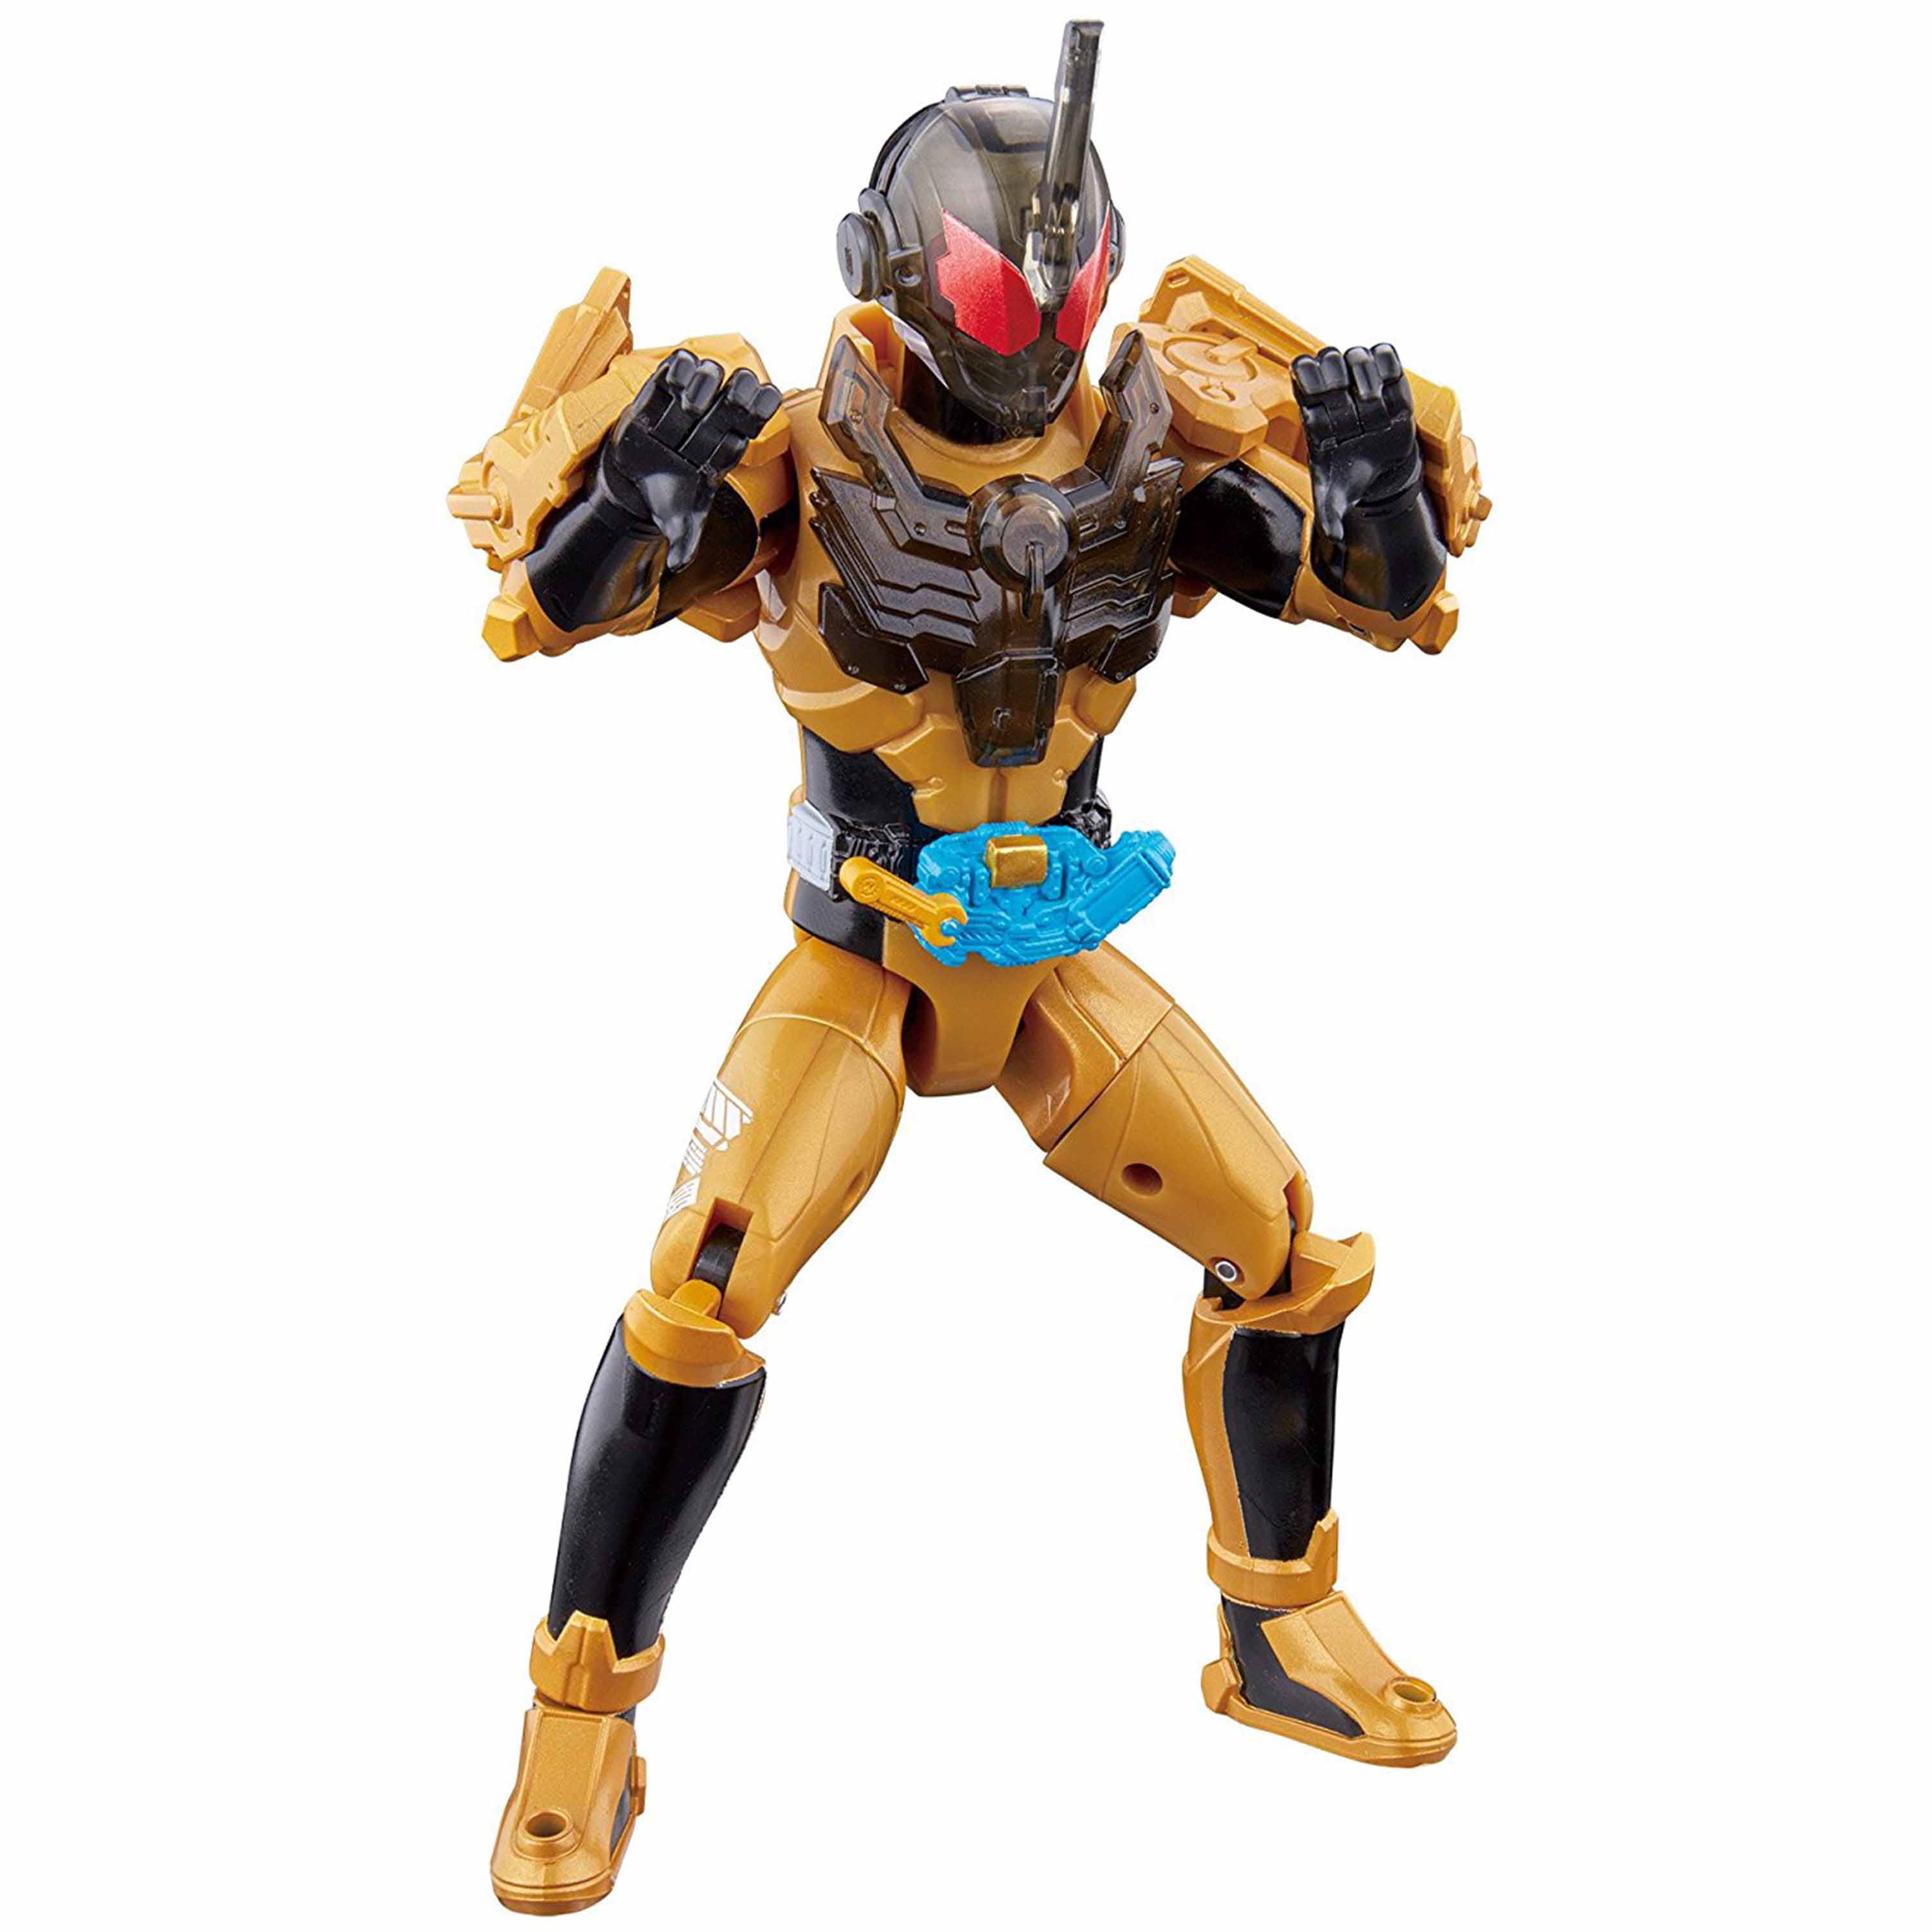 BCR SERIES 10 MASKED RIDER GREASE